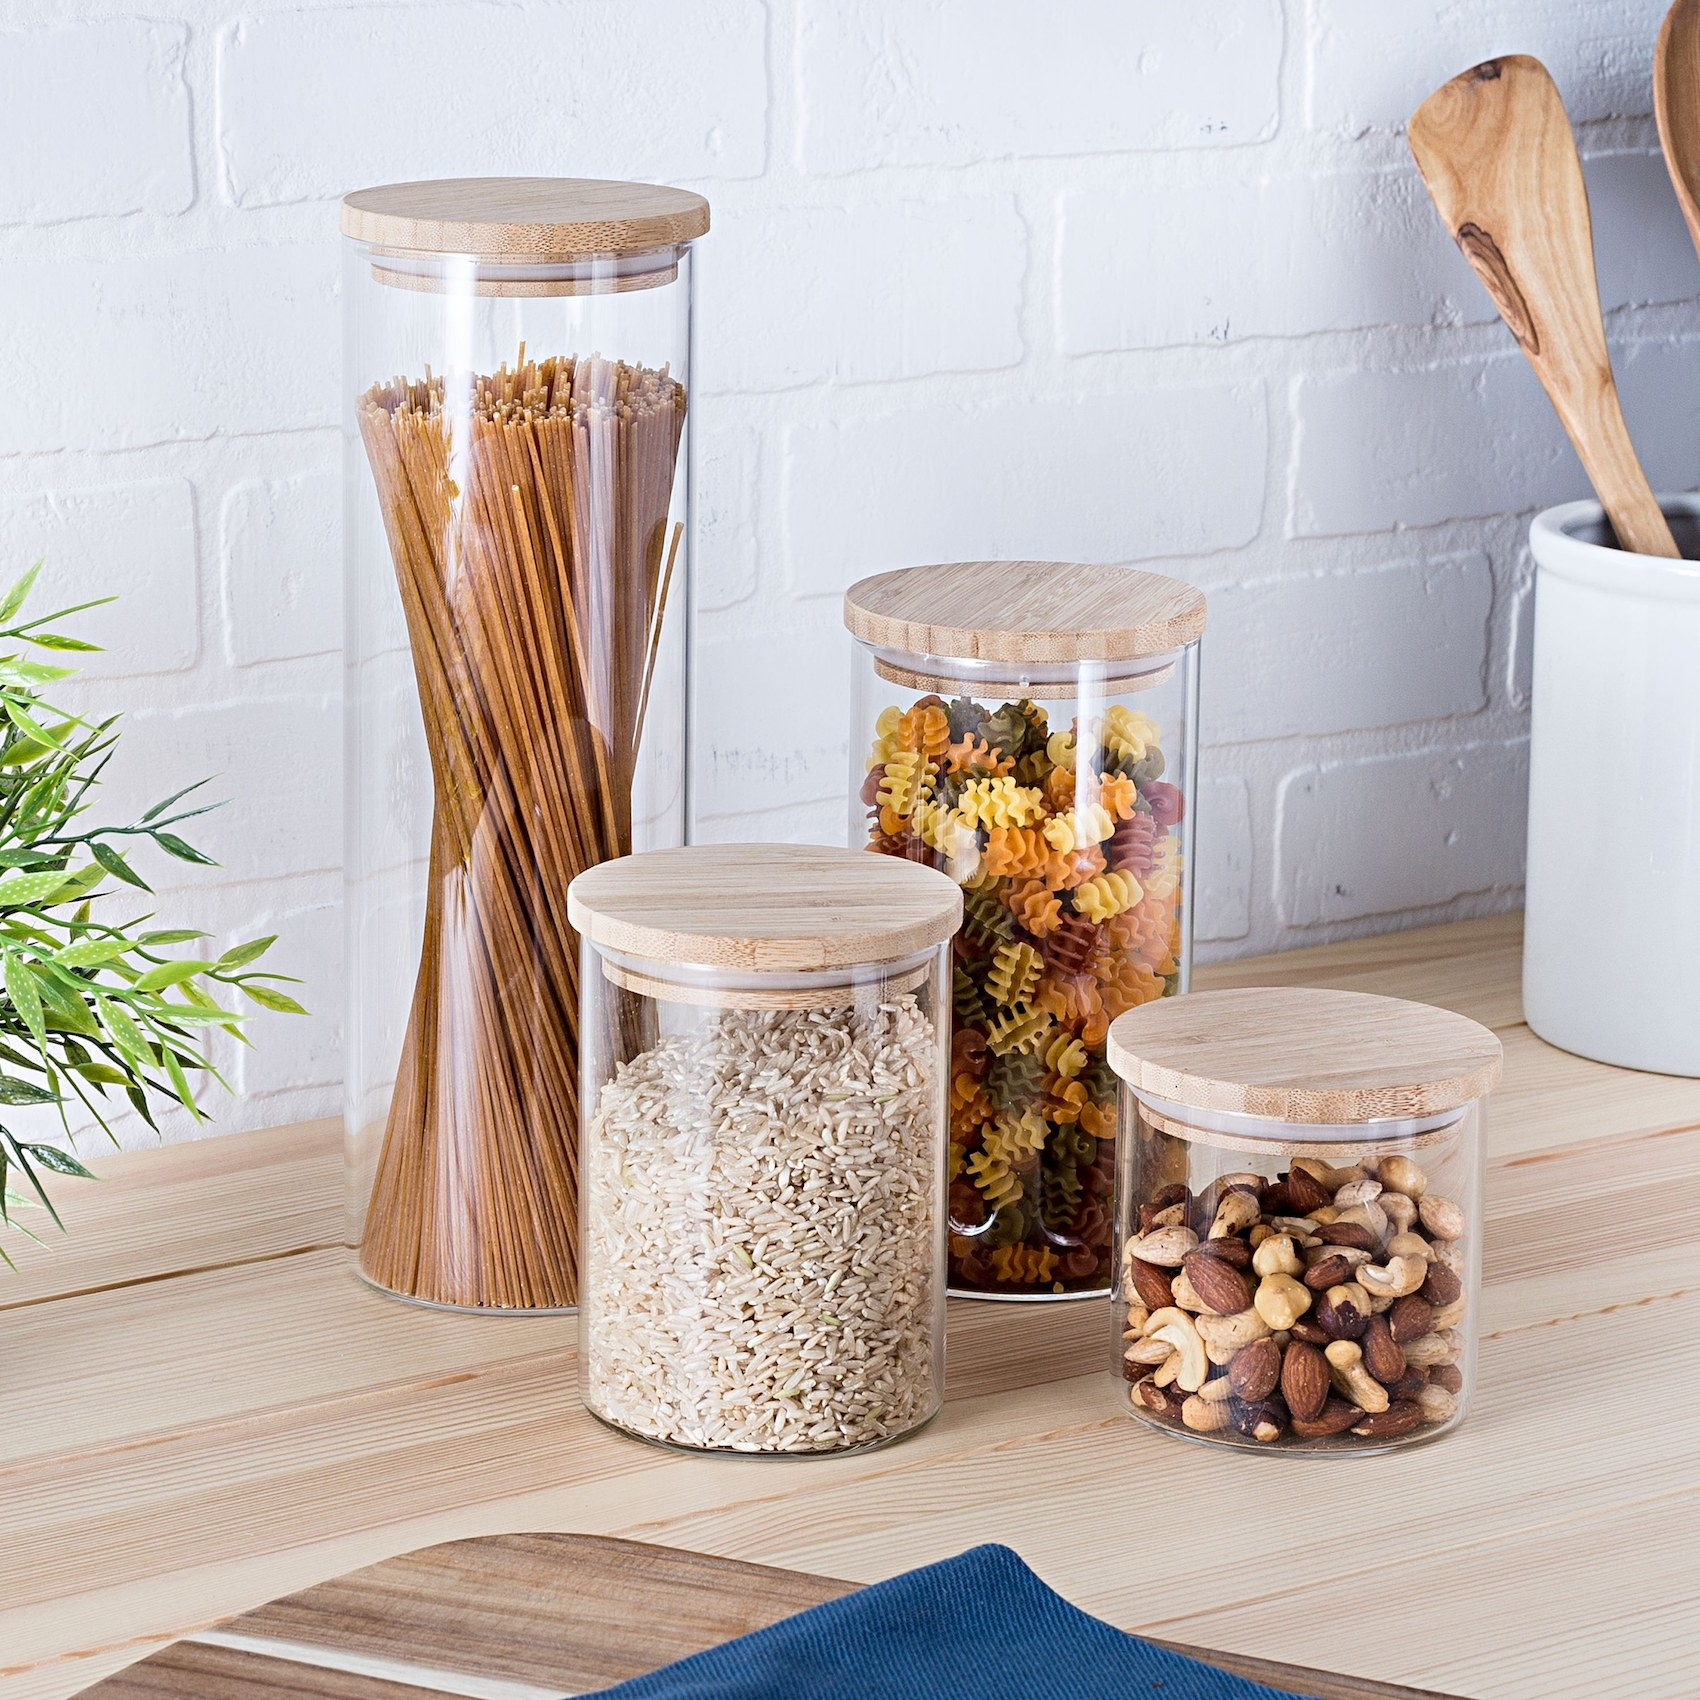 The four storage jars filled with different dried goods on a kitchen counter